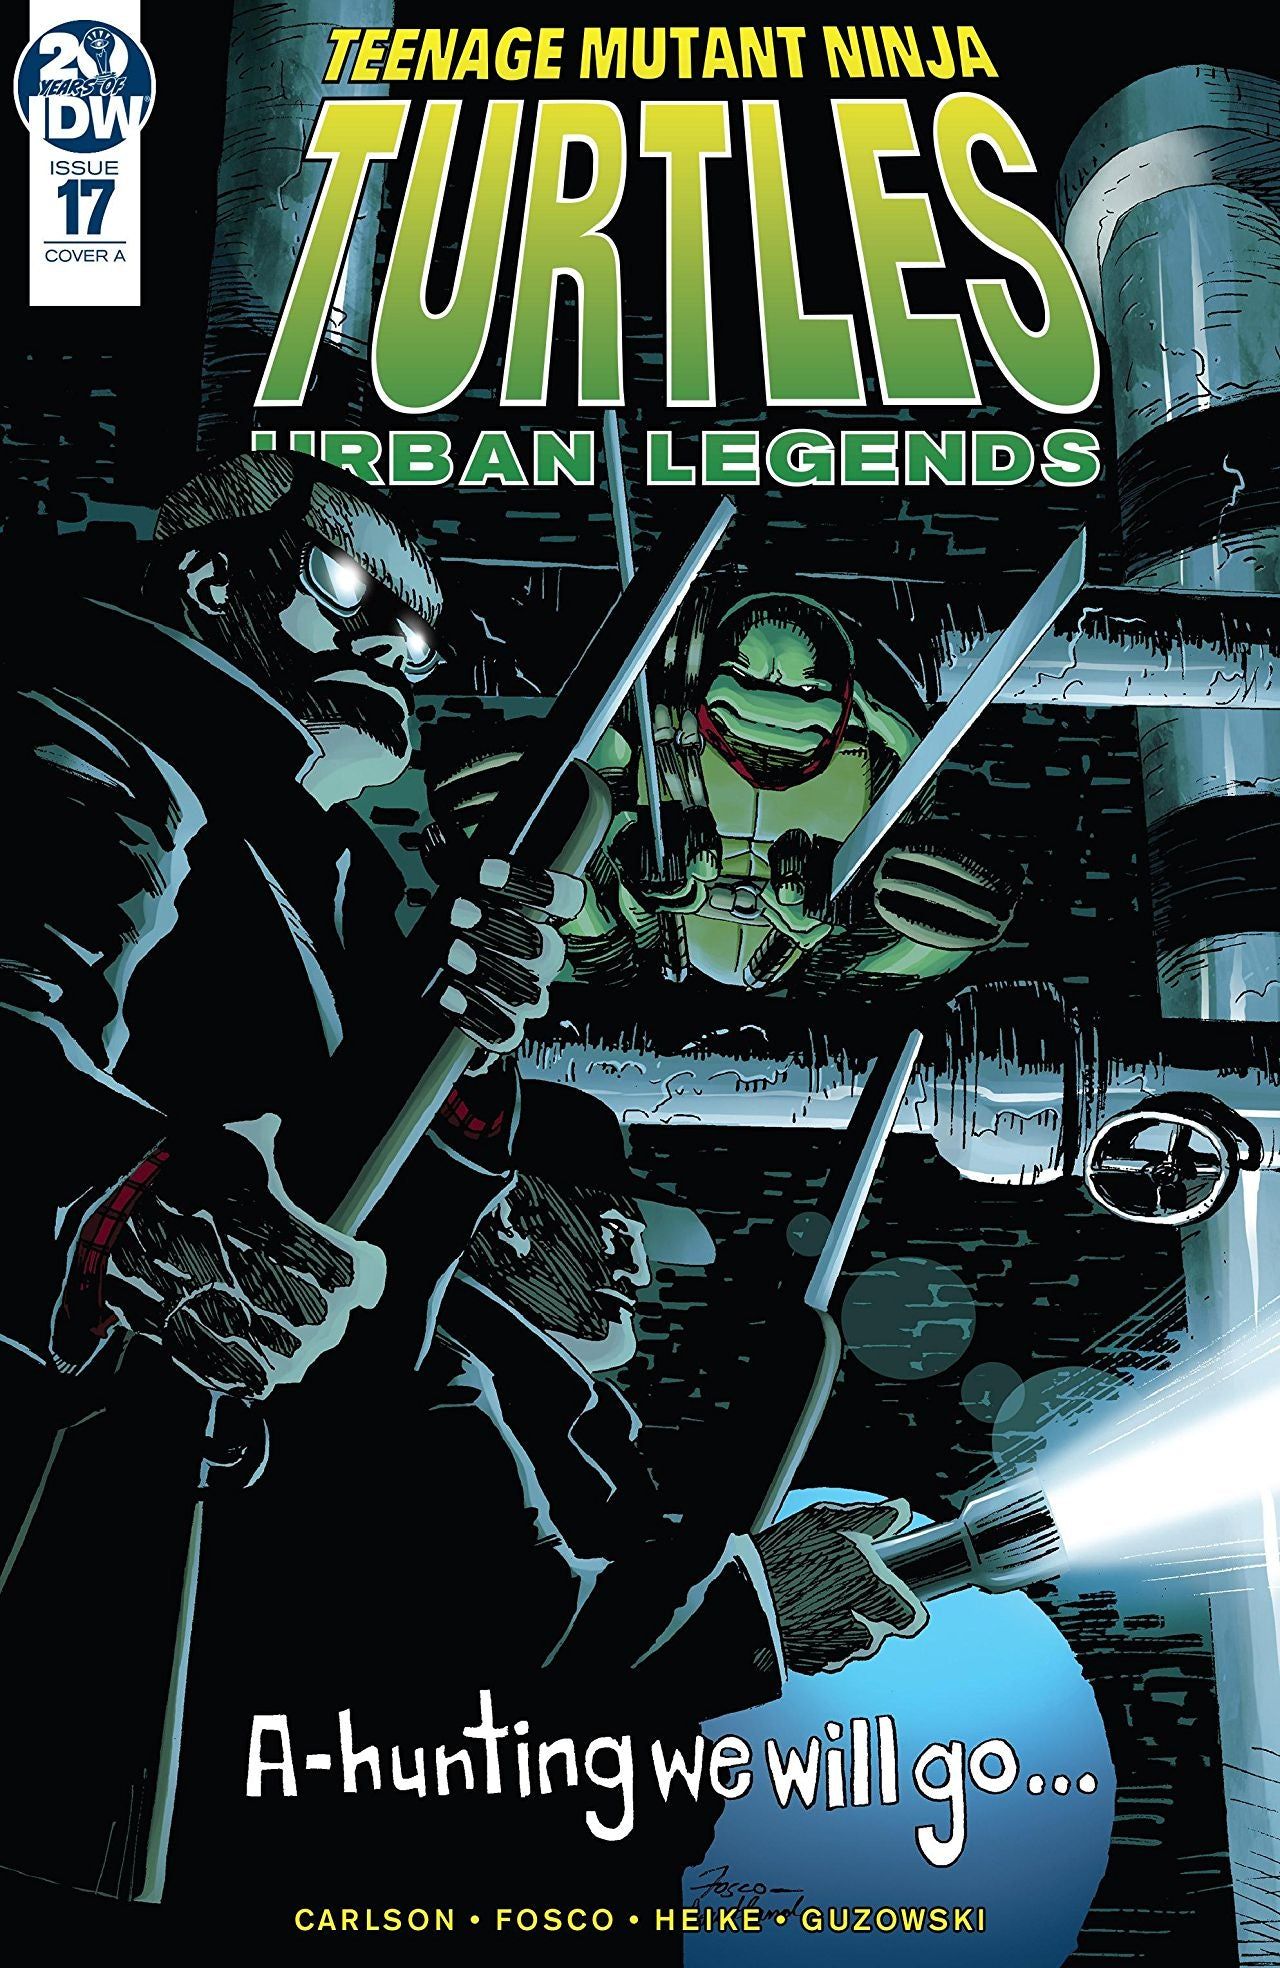 Teenage Mutant Ninja Turtles: Urban Legends #17